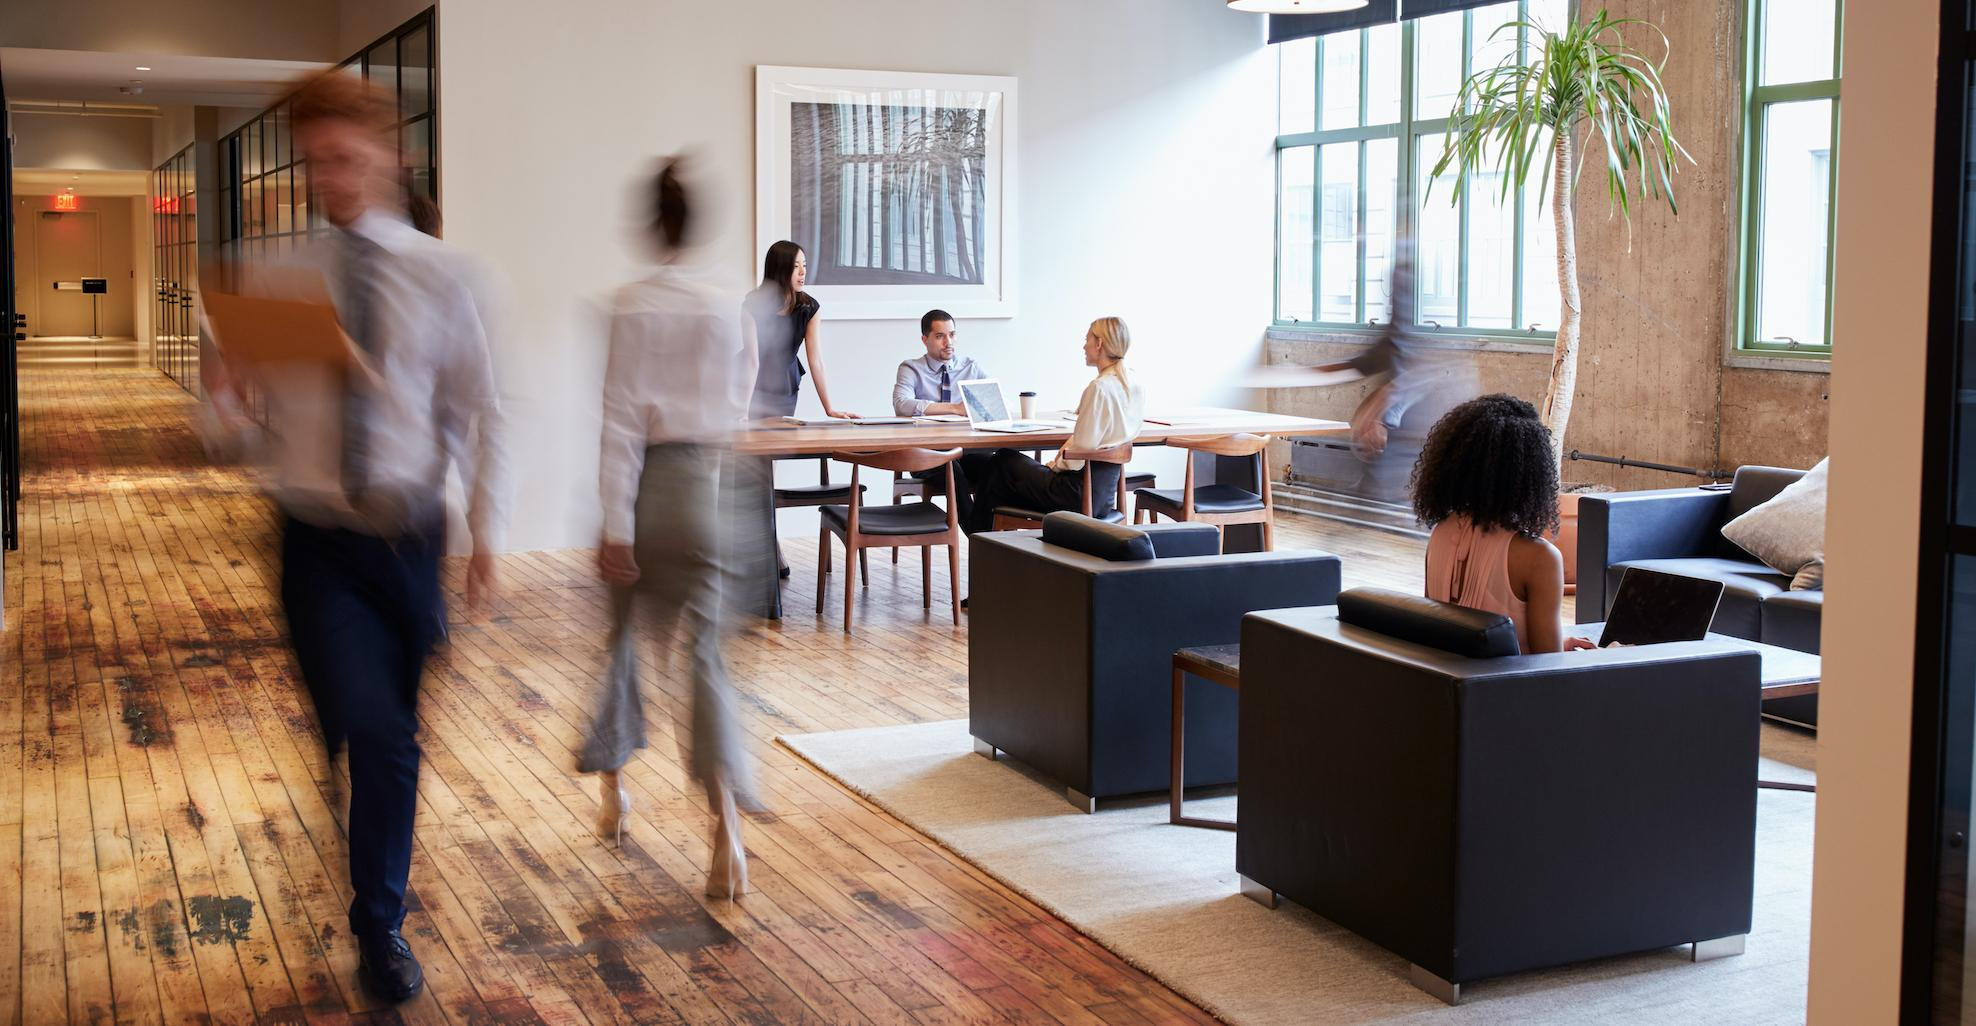 office space with wood floors and people walking